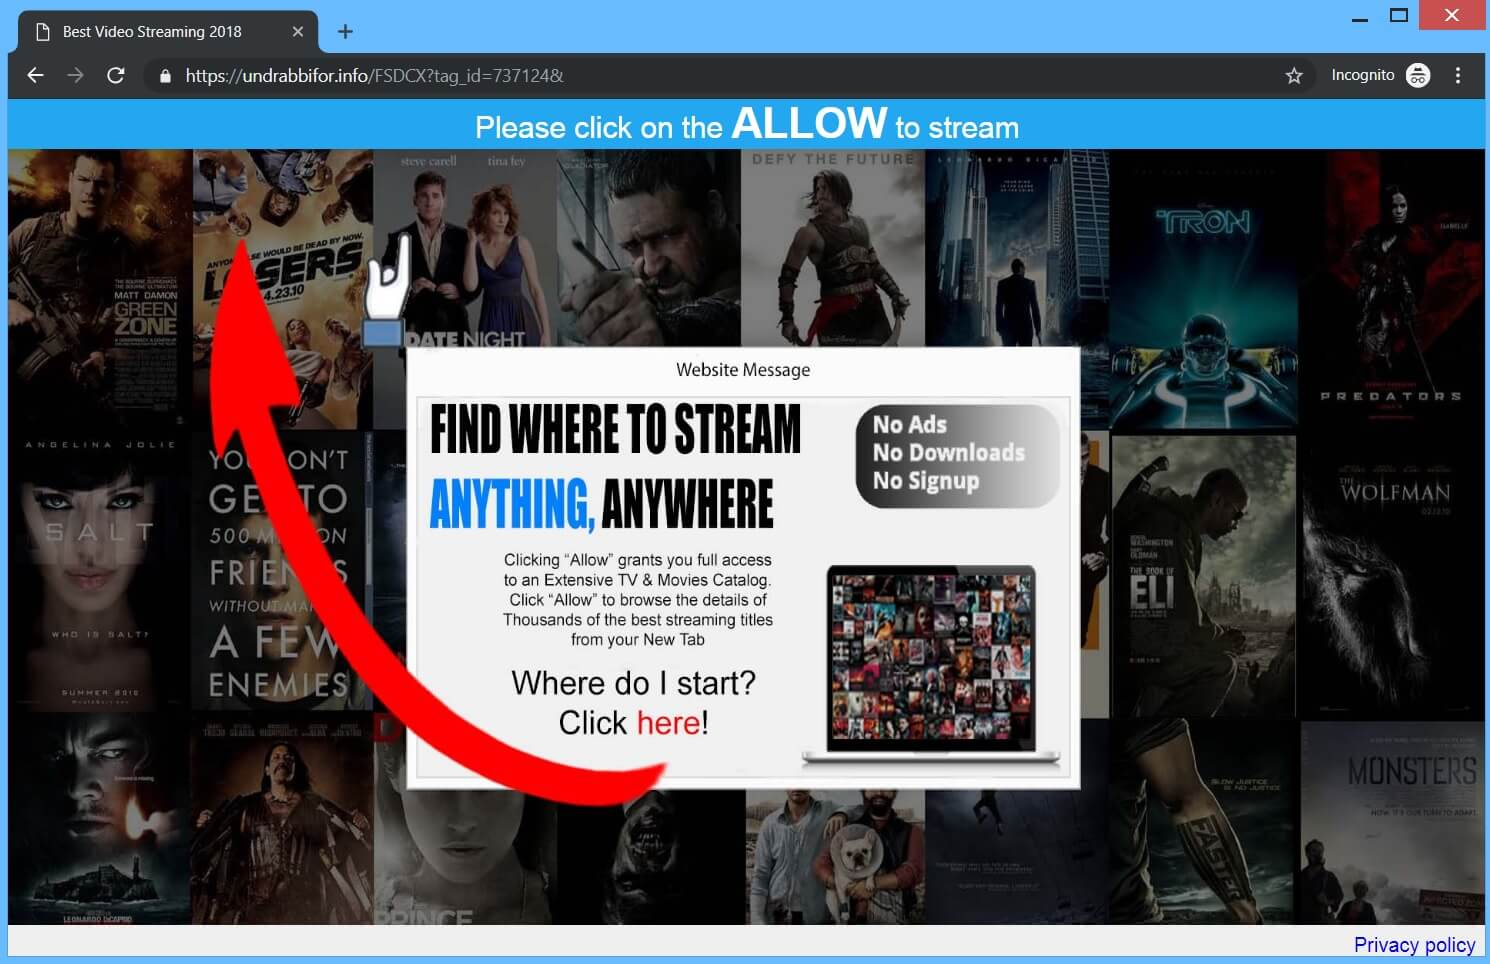 undrabbifor.info redirect movies streaming